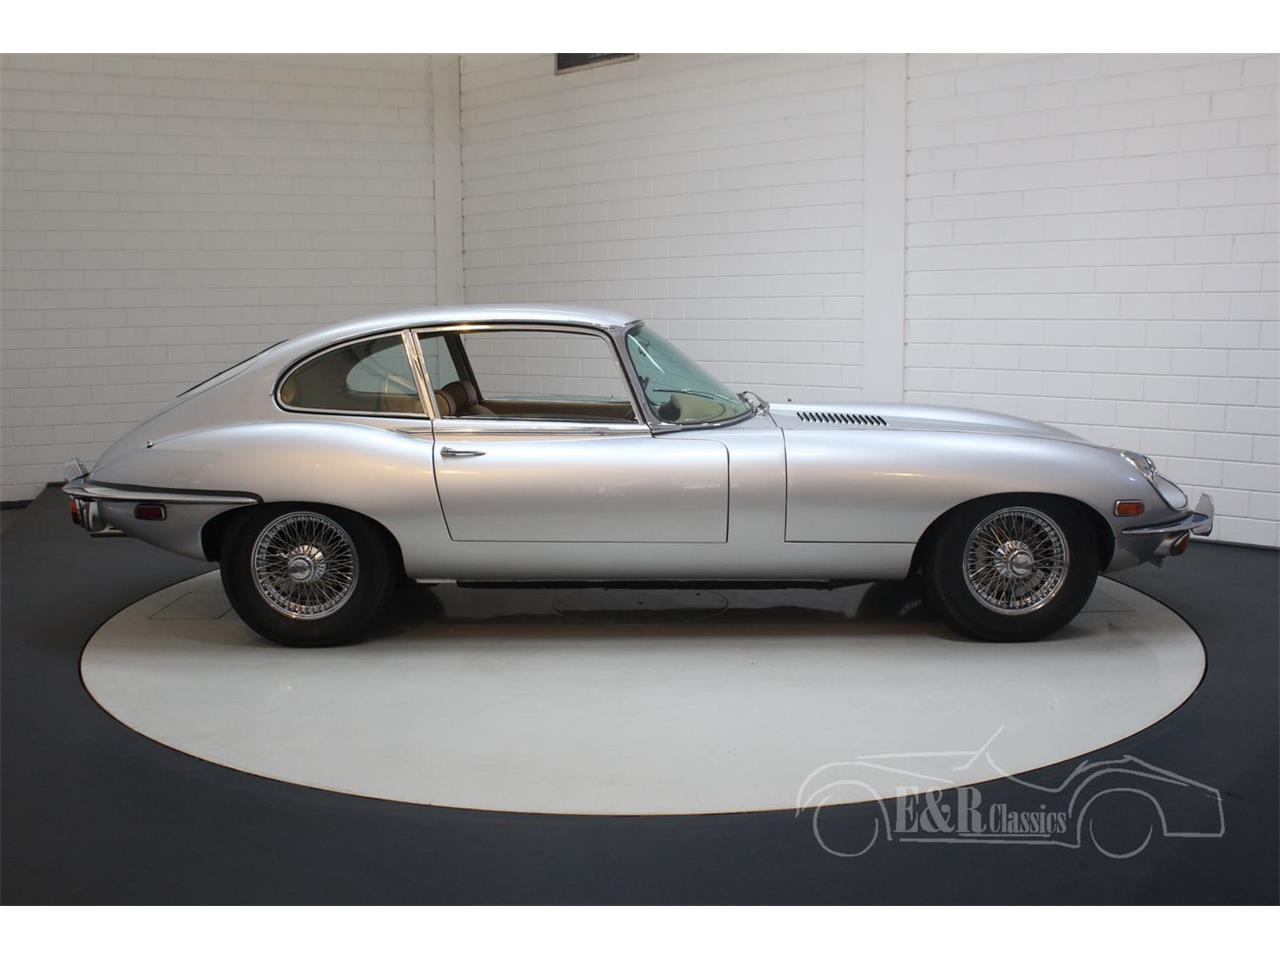 Large Picture of Classic 1969 Jaguar E-Type located in Waalwijk noord brabant - $101,000.00 Offered by E & R Classics - PRSR